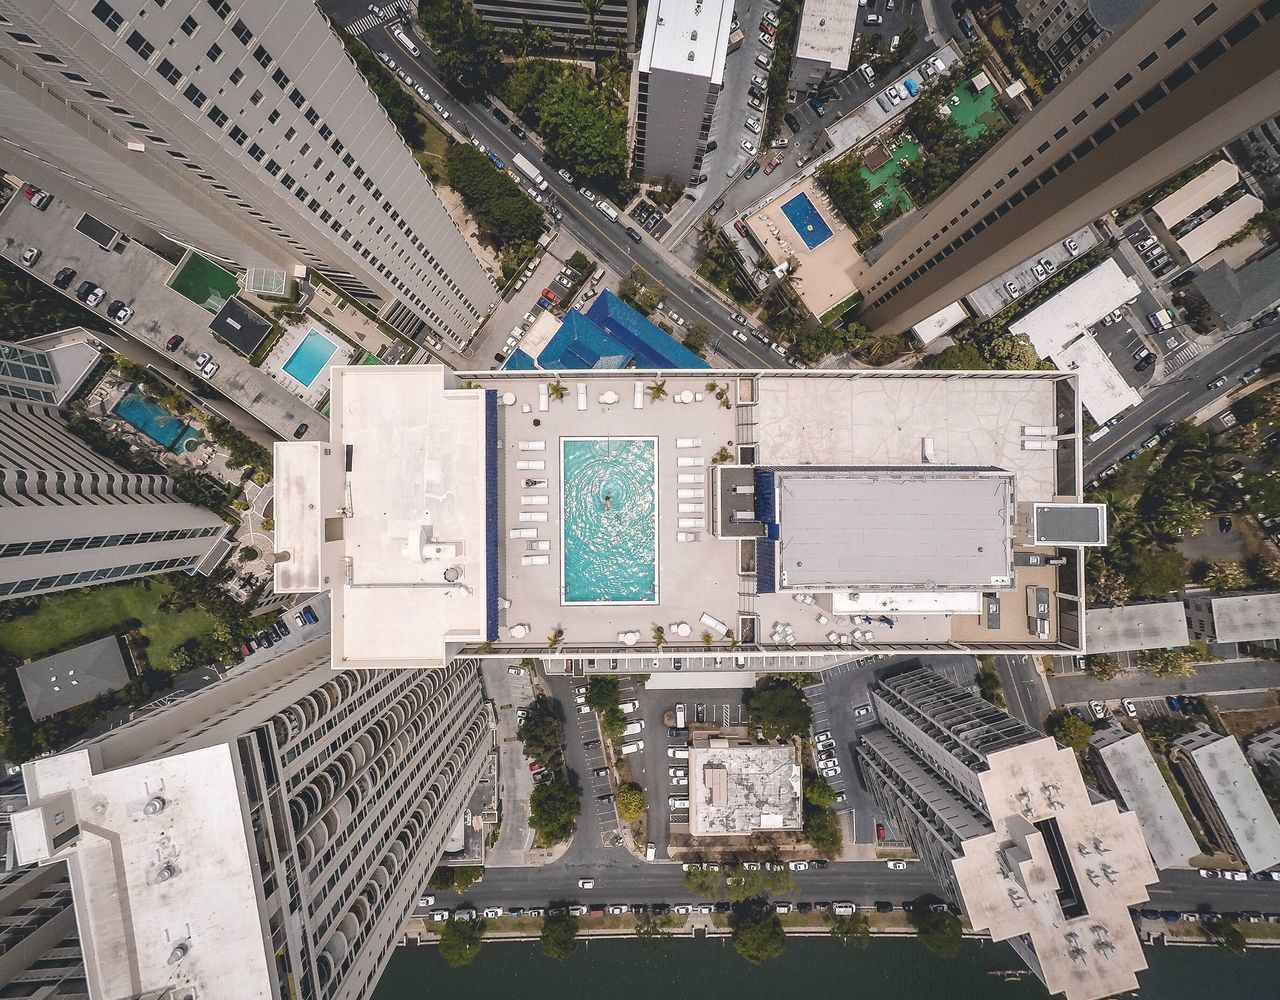 Perfect way to start the weekend! Enjoying Life Check This Out Hello World 3drsolo Drone  Dronephotography Aerial View High Angle View City City Life Pool Photography The Week On EyeEm Showcase July A Bird's Eye View The Architect - 2017 EyeEm Awards Neighborhood Map